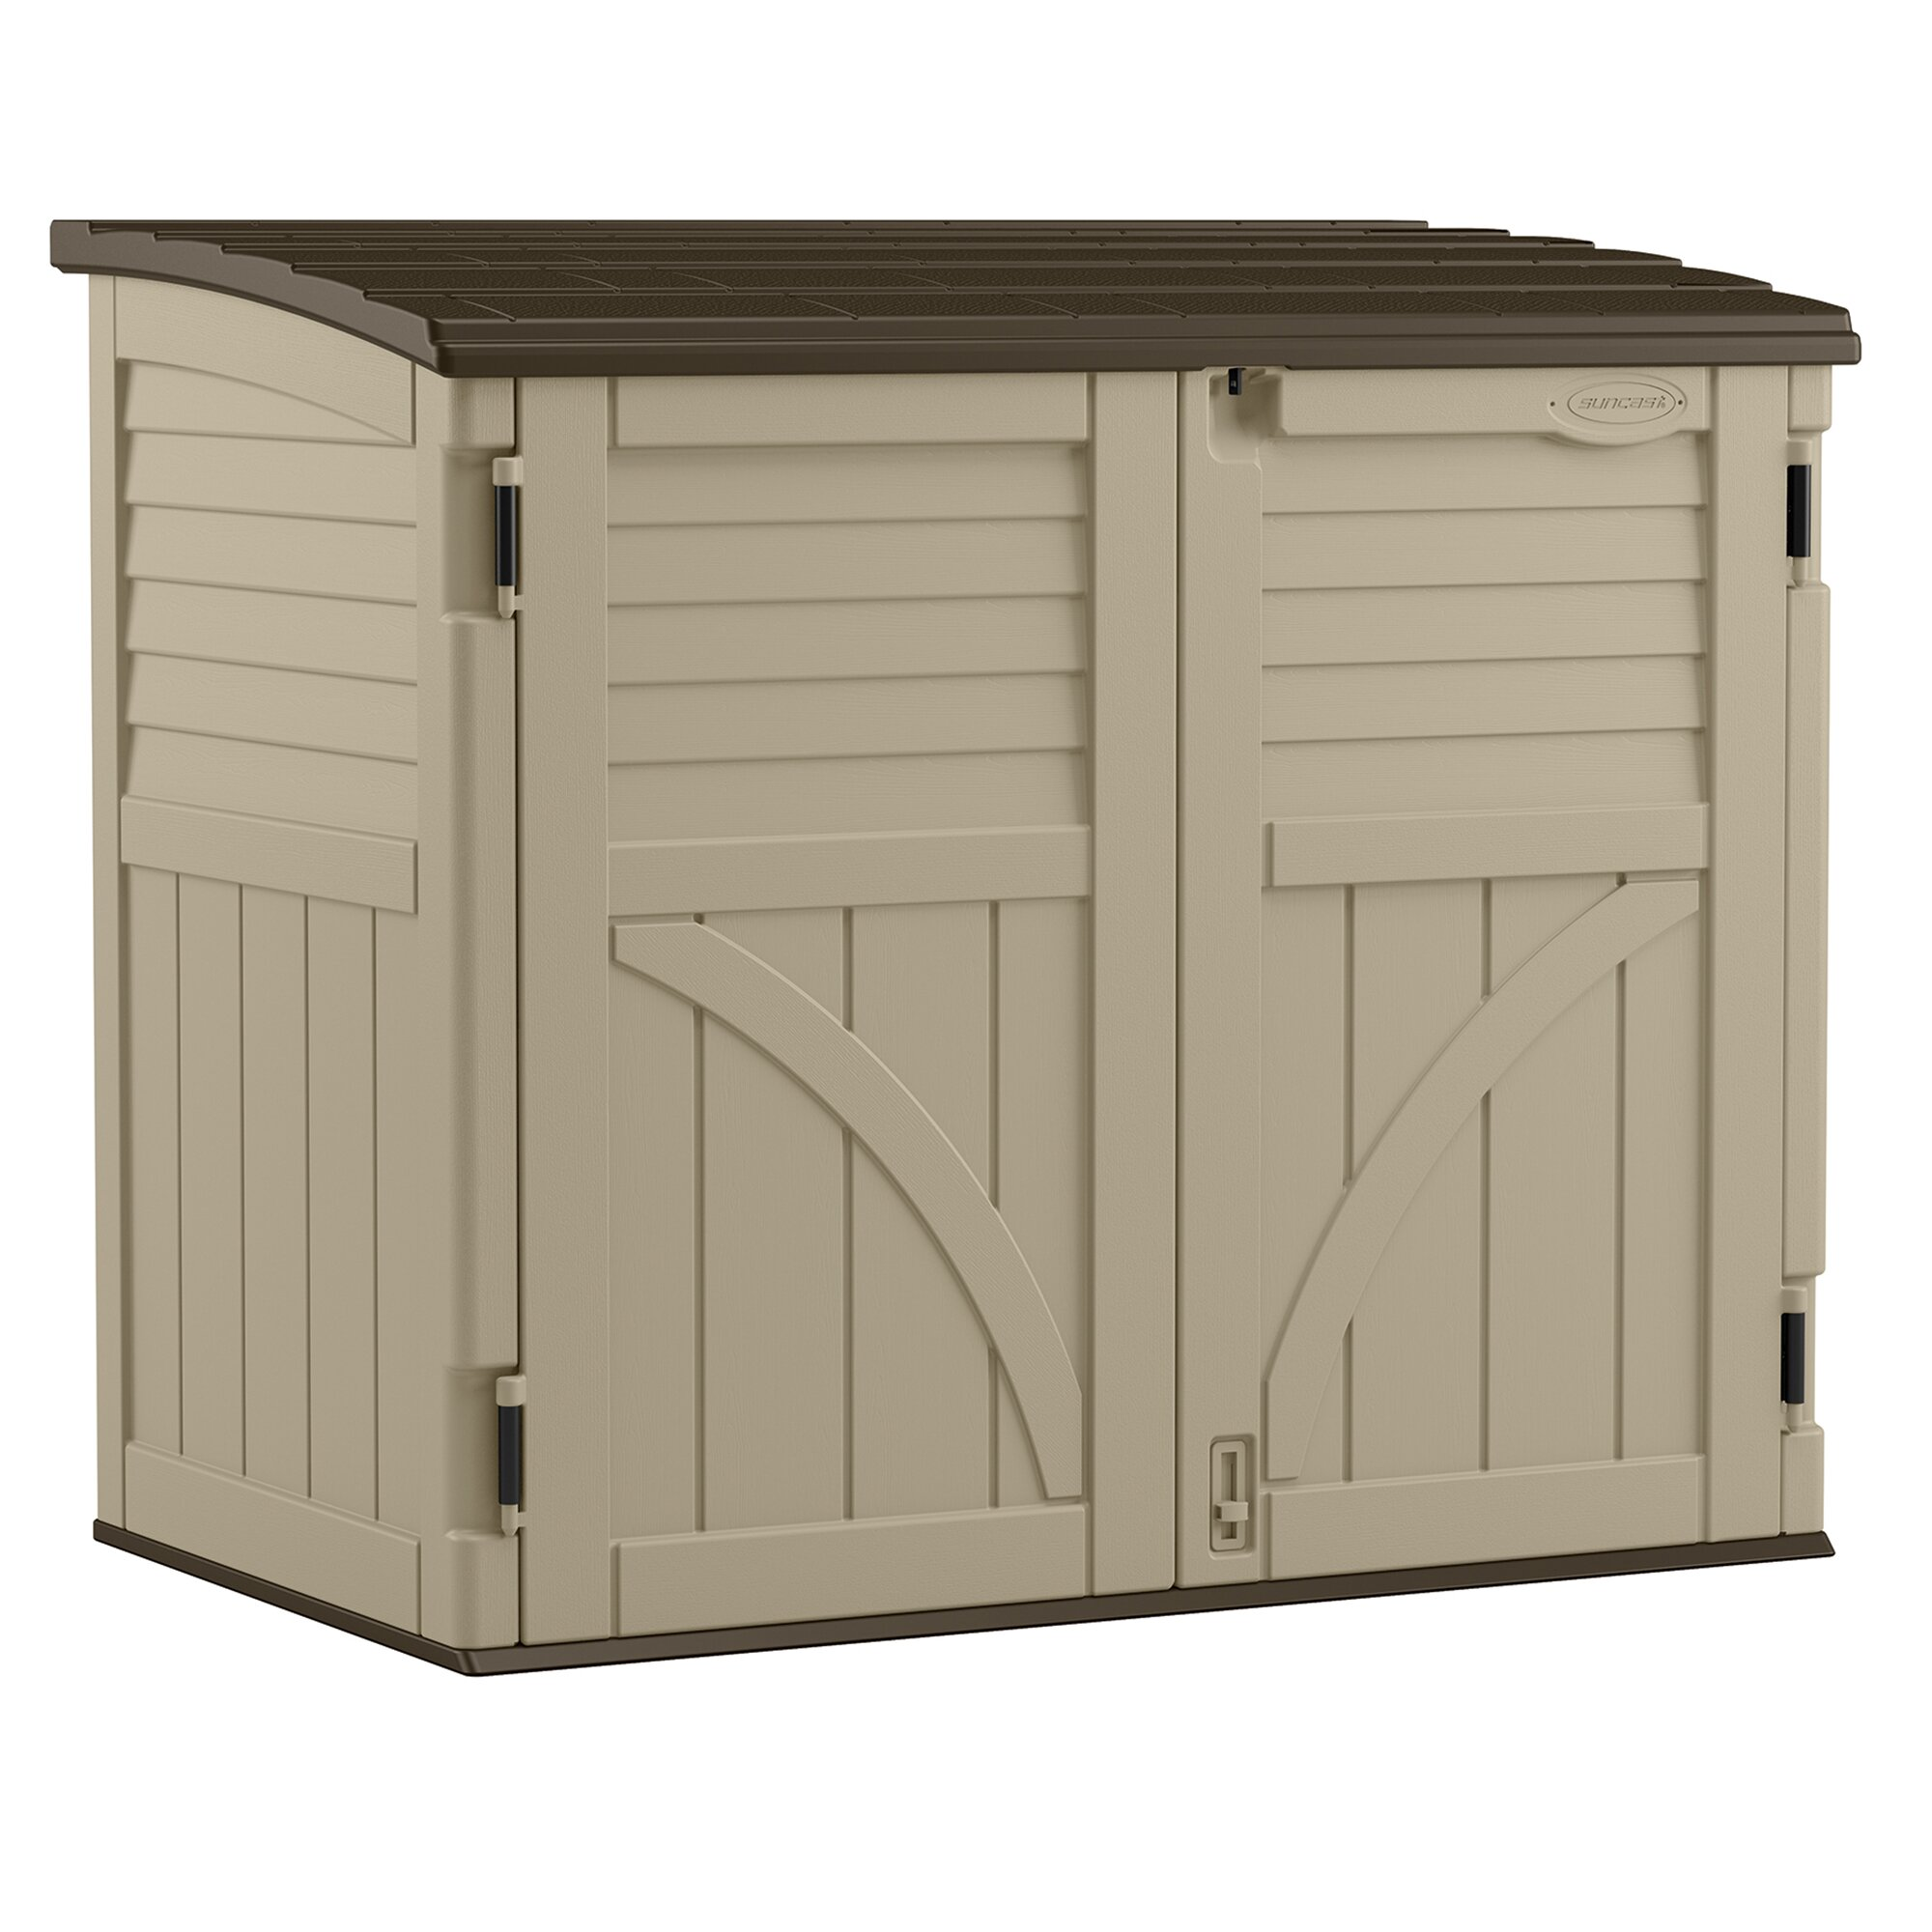 Utility 4 4 ft w x 2 7 ft d plastic storage shed wayfair for Garden shed 2 x 2